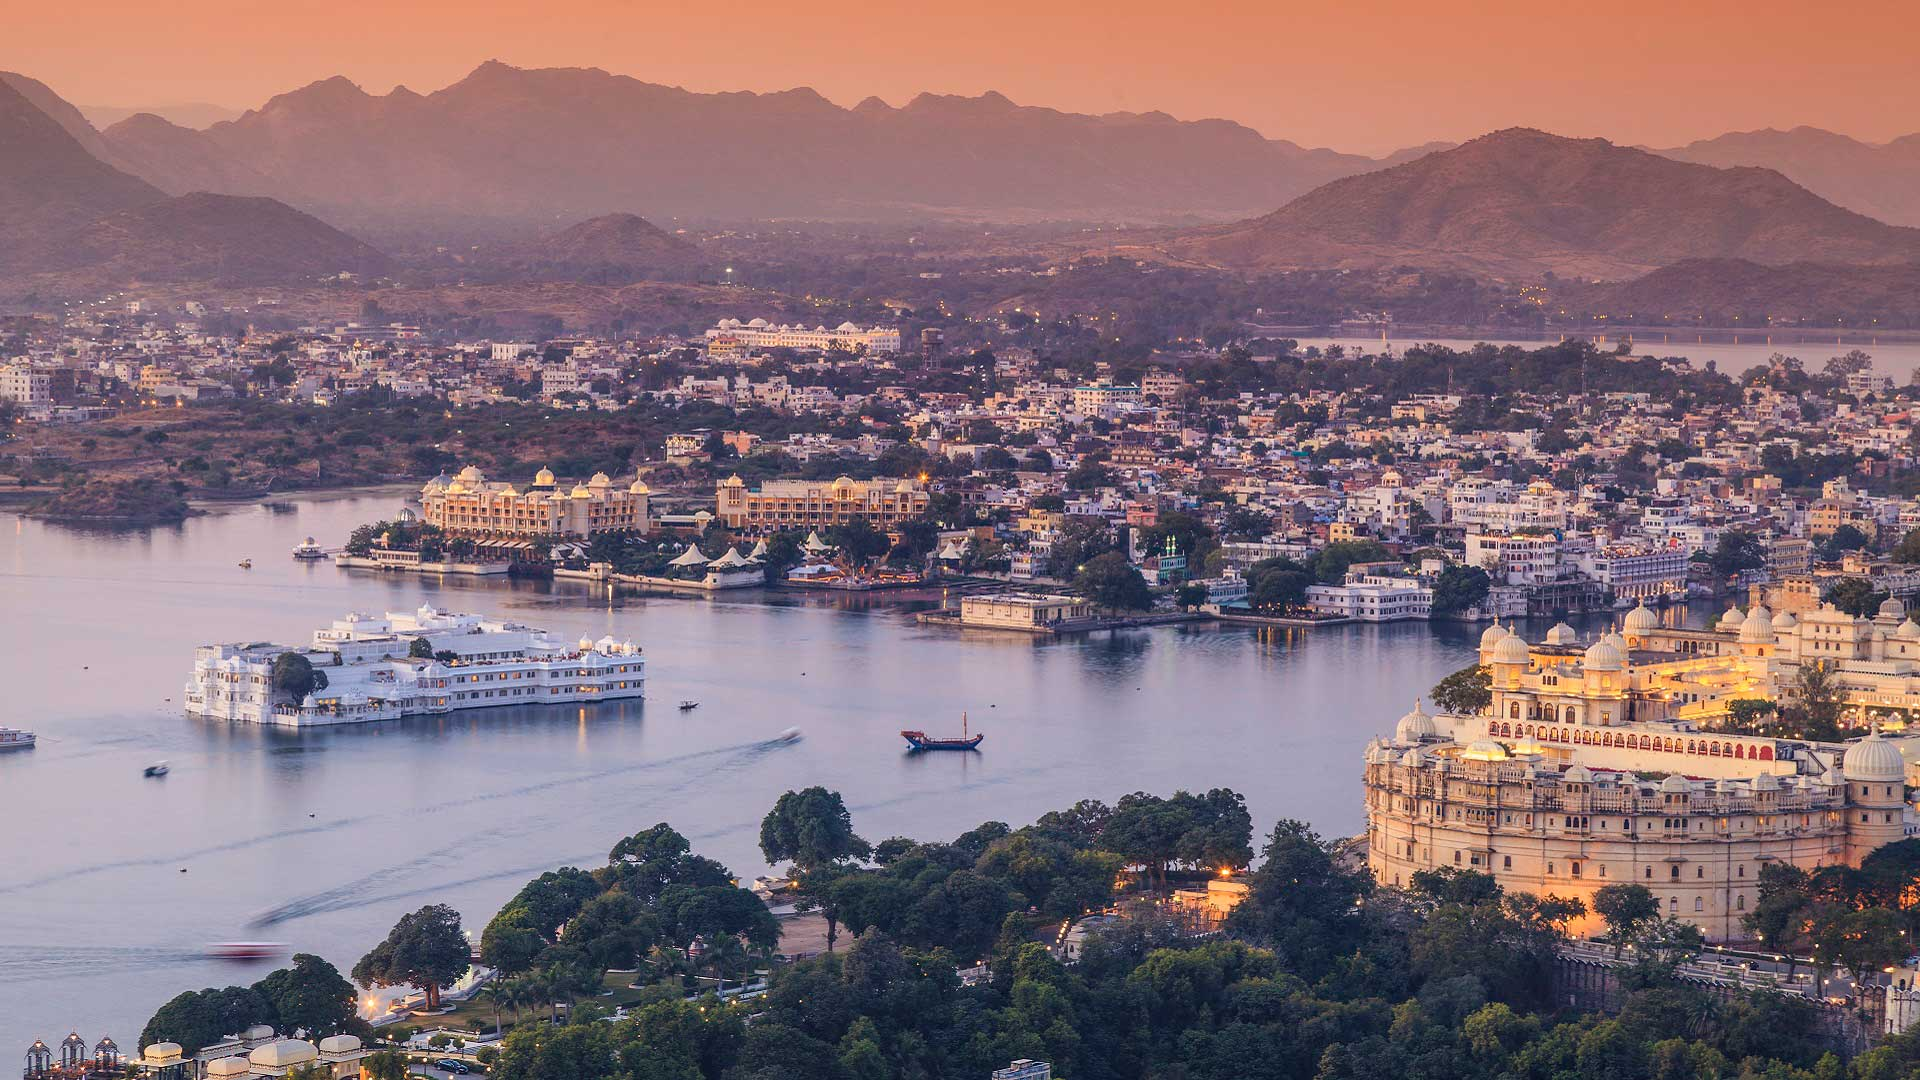 View of Lake Pichola and Udaipur, India with GeoEx.